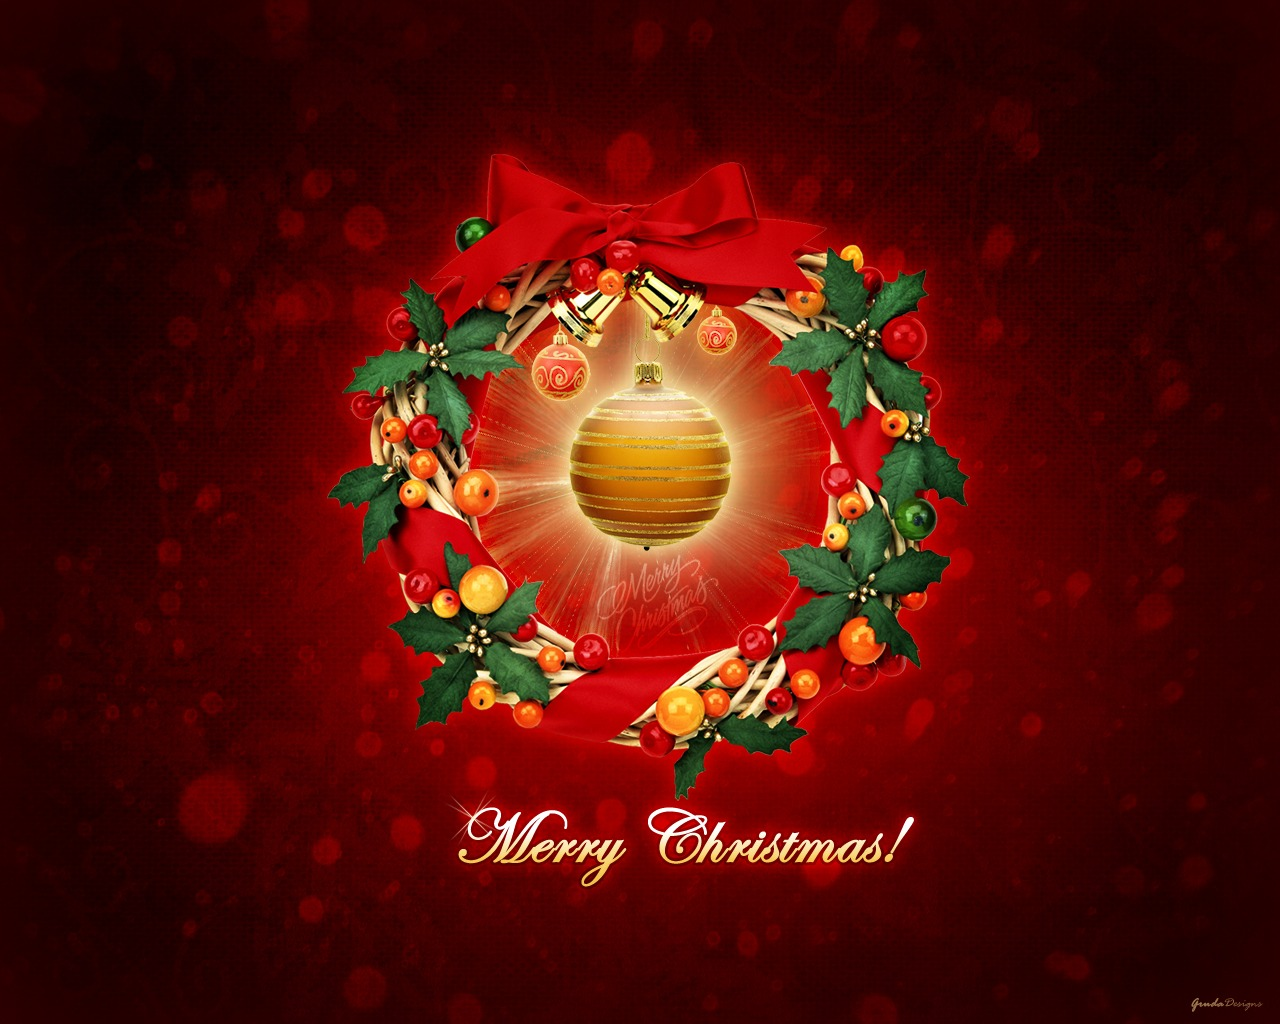 Merry Christmas Live Wallpaper hd pictures